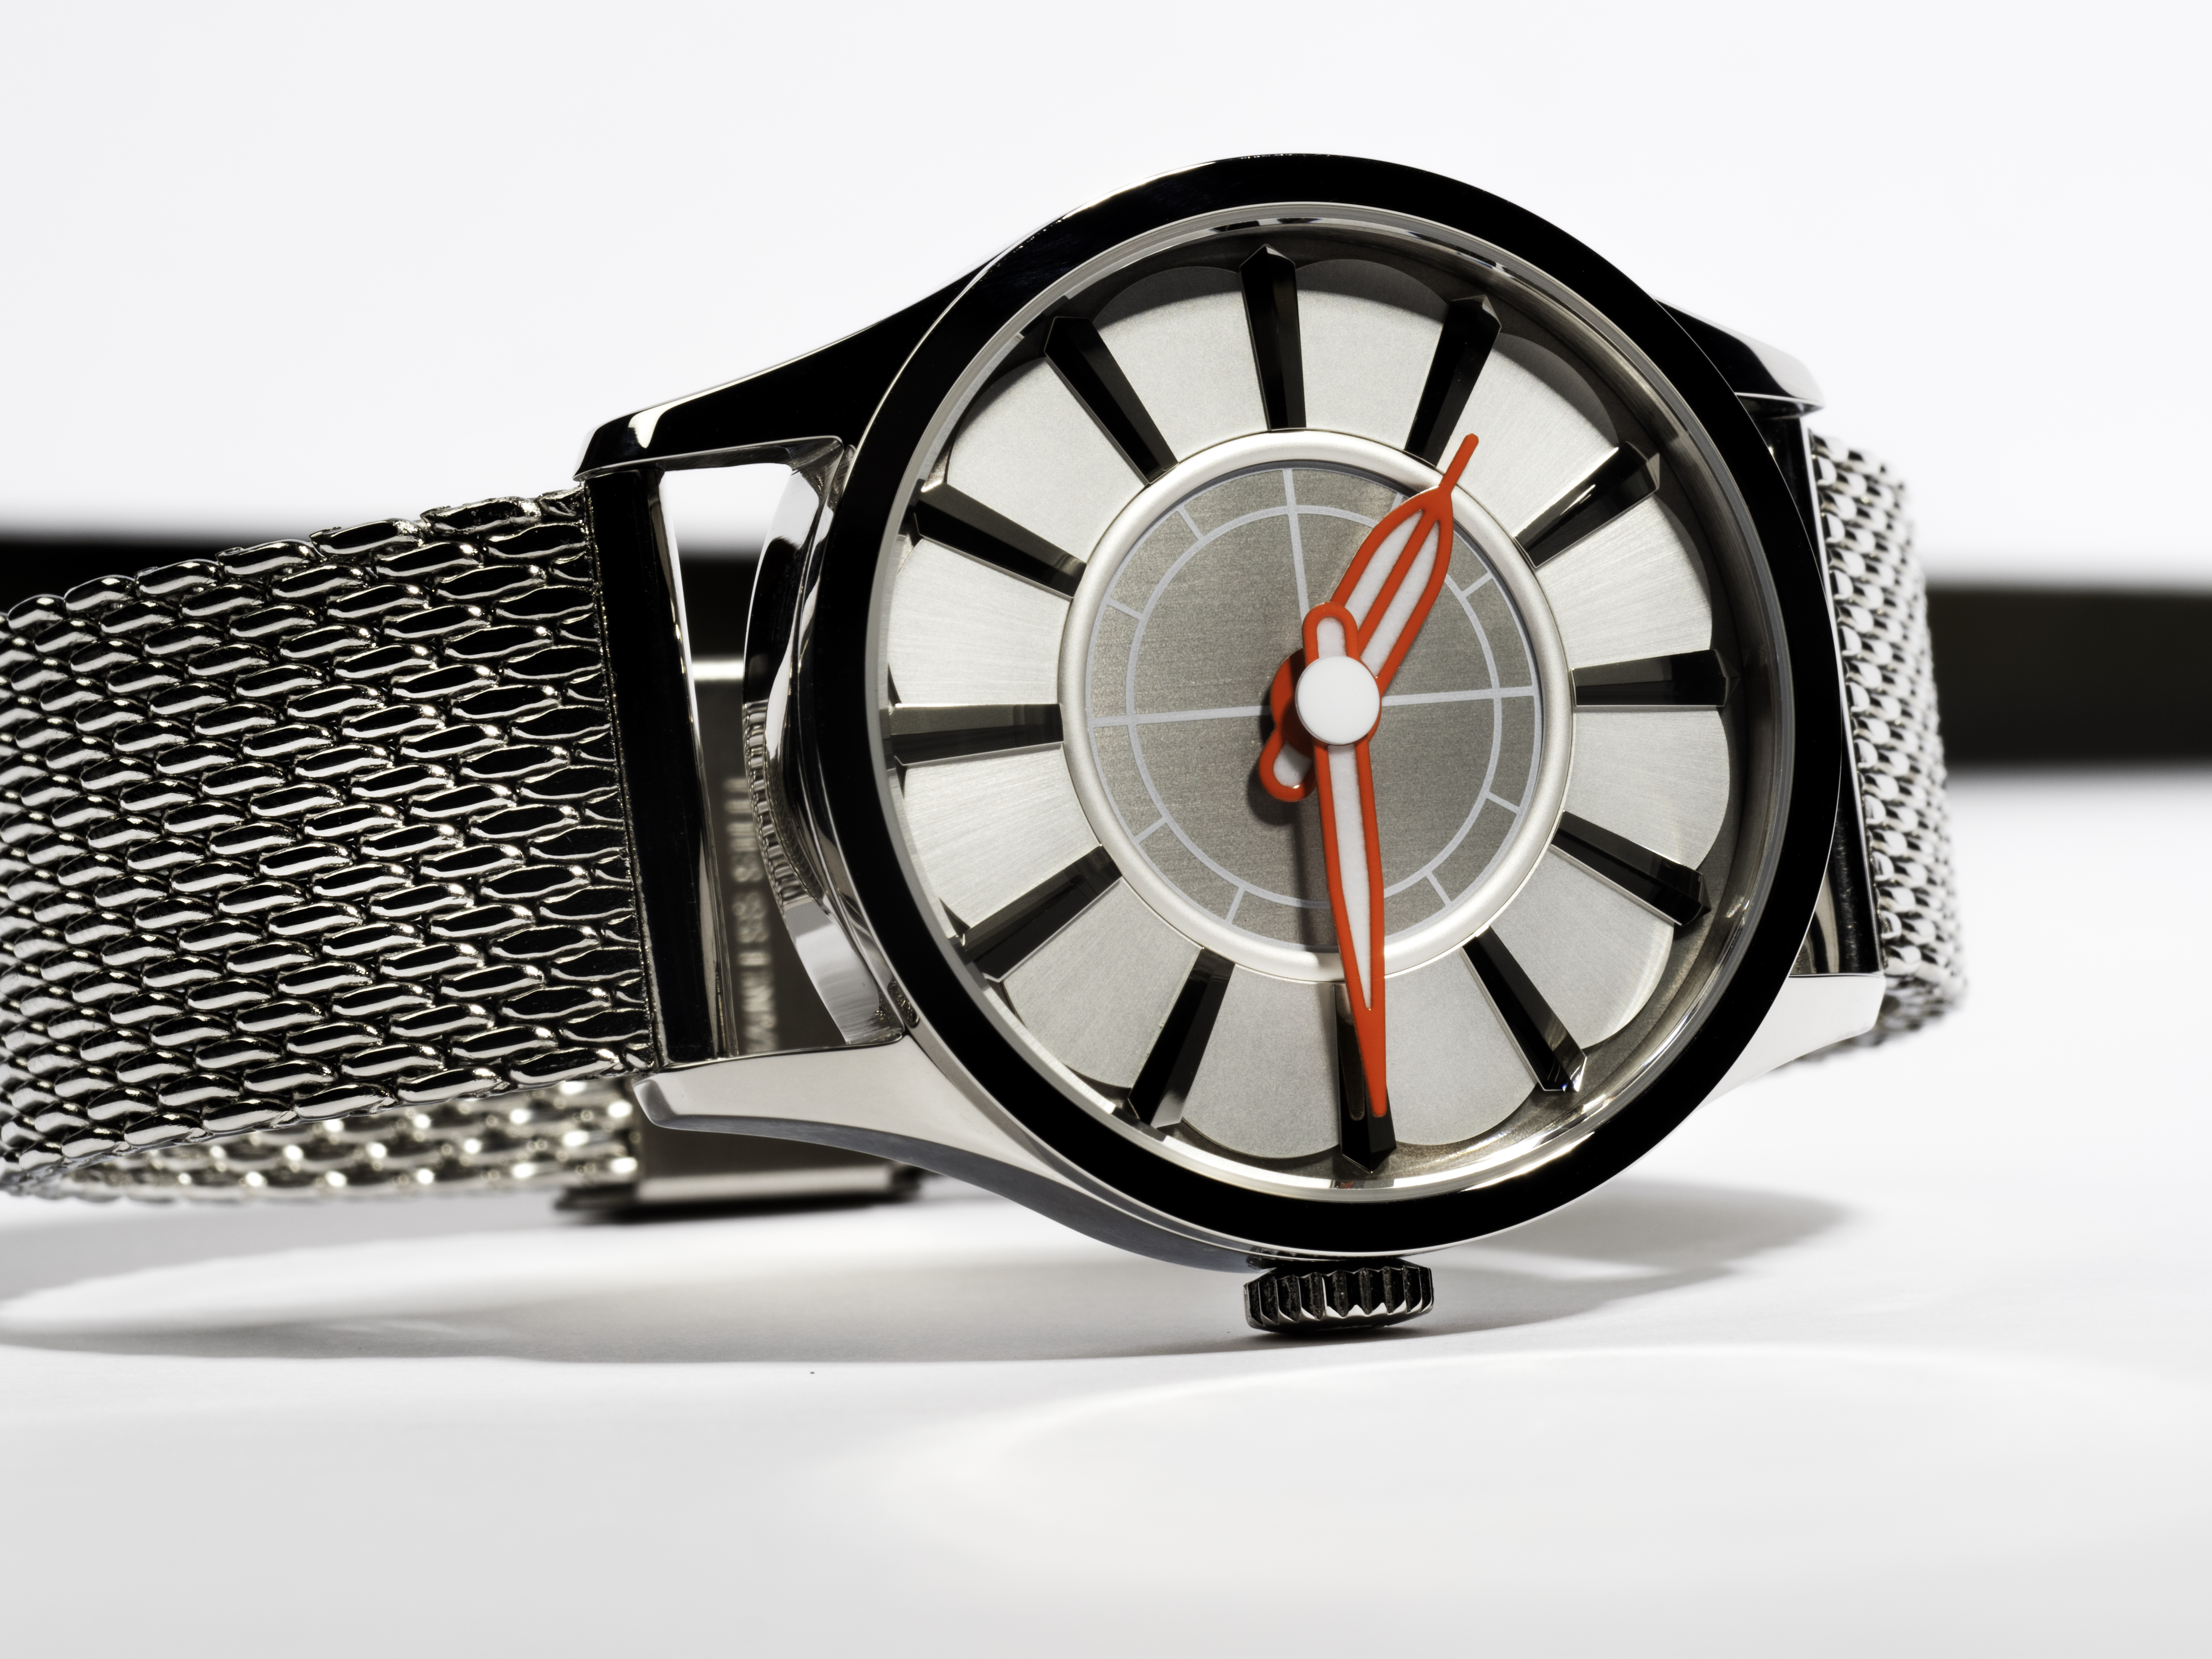 CUT-Watch-front.jpg#asset:1486